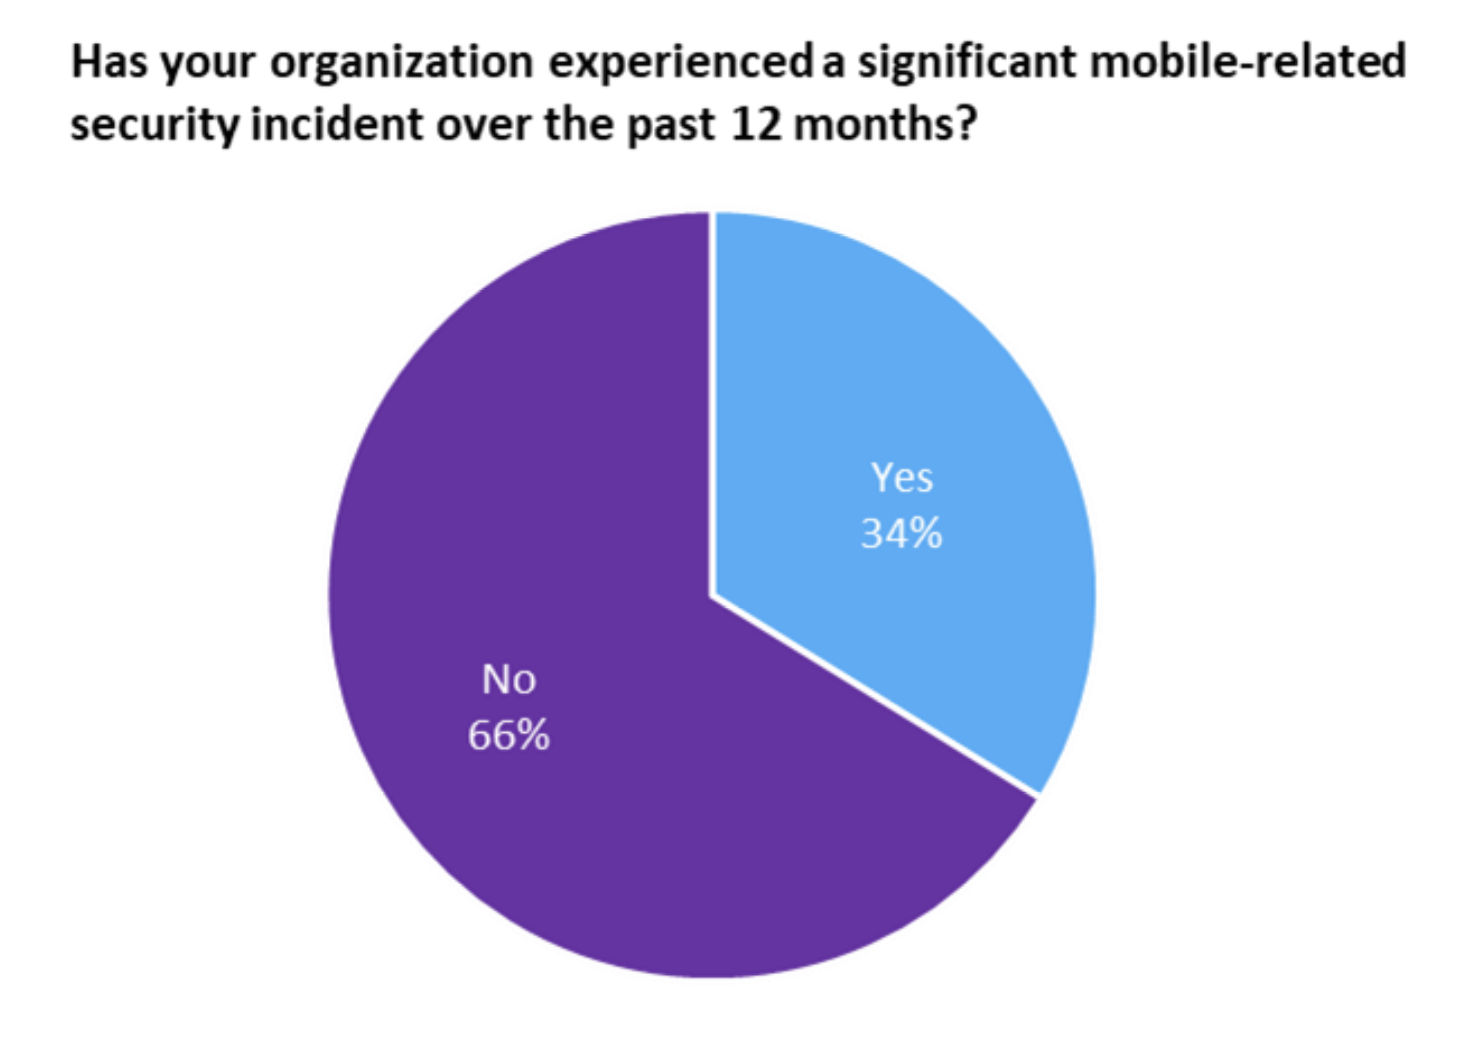 Mobile-related security threats are common